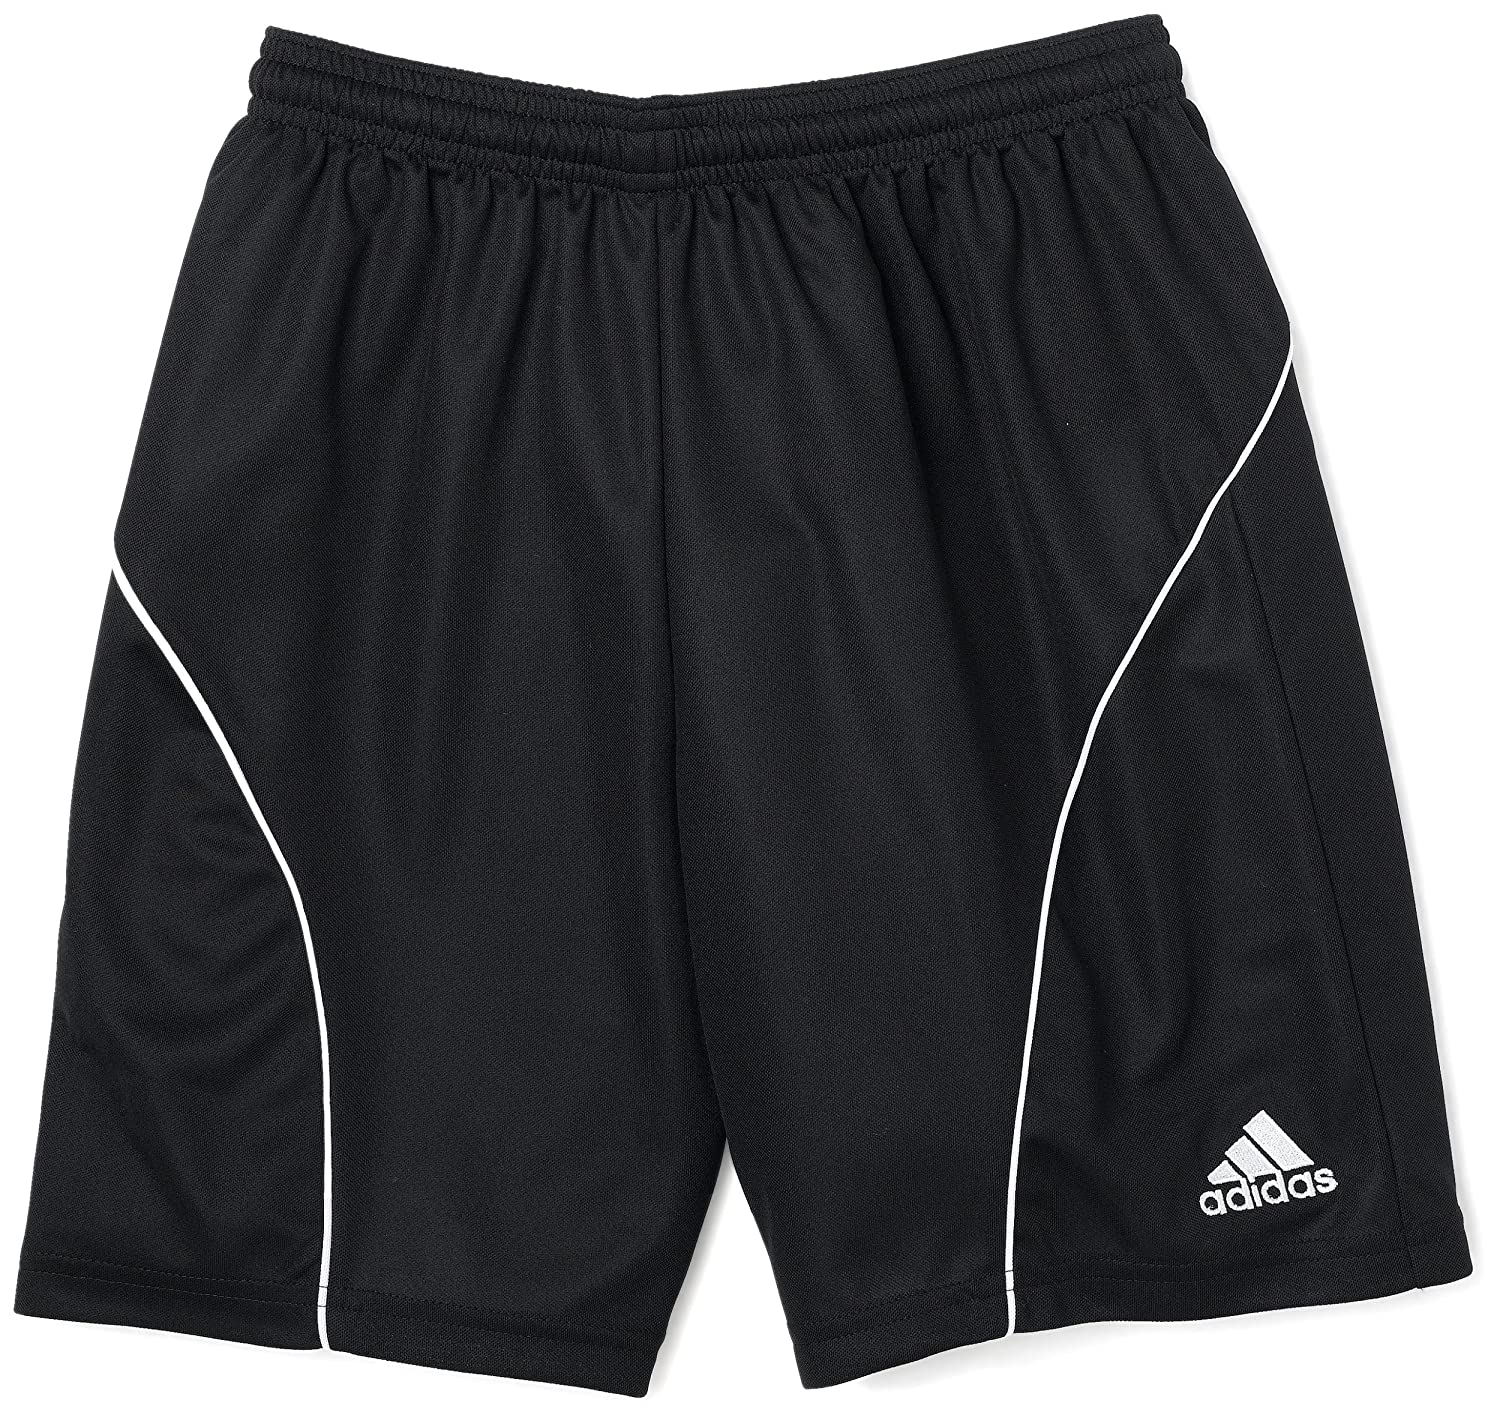 adidas Striker Shorts youth sizes brand new with tags ...